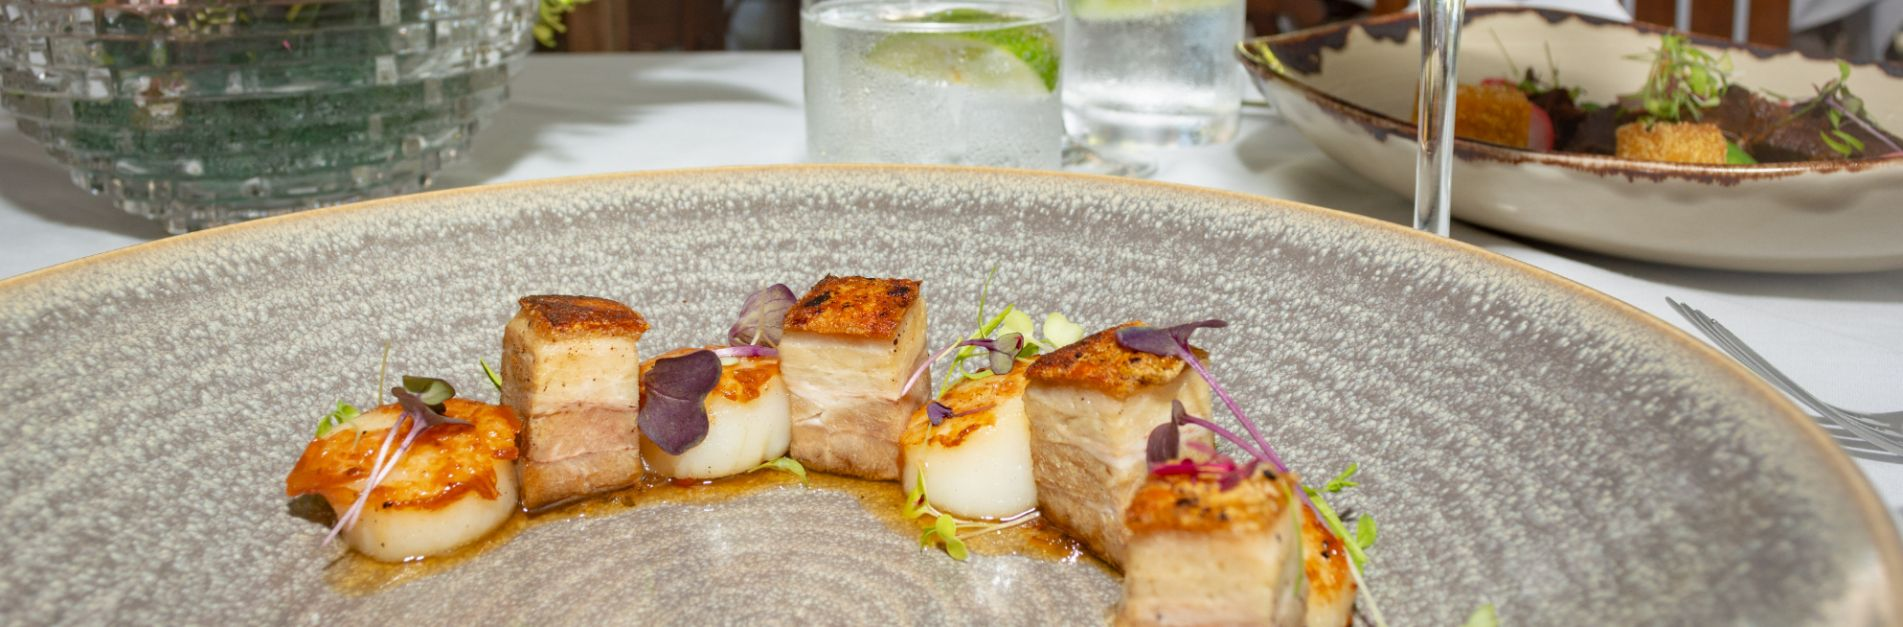 80-28082018135107-12-465-1987-654-1903x627-cropped-scallops-and-pork-belly-with-wine